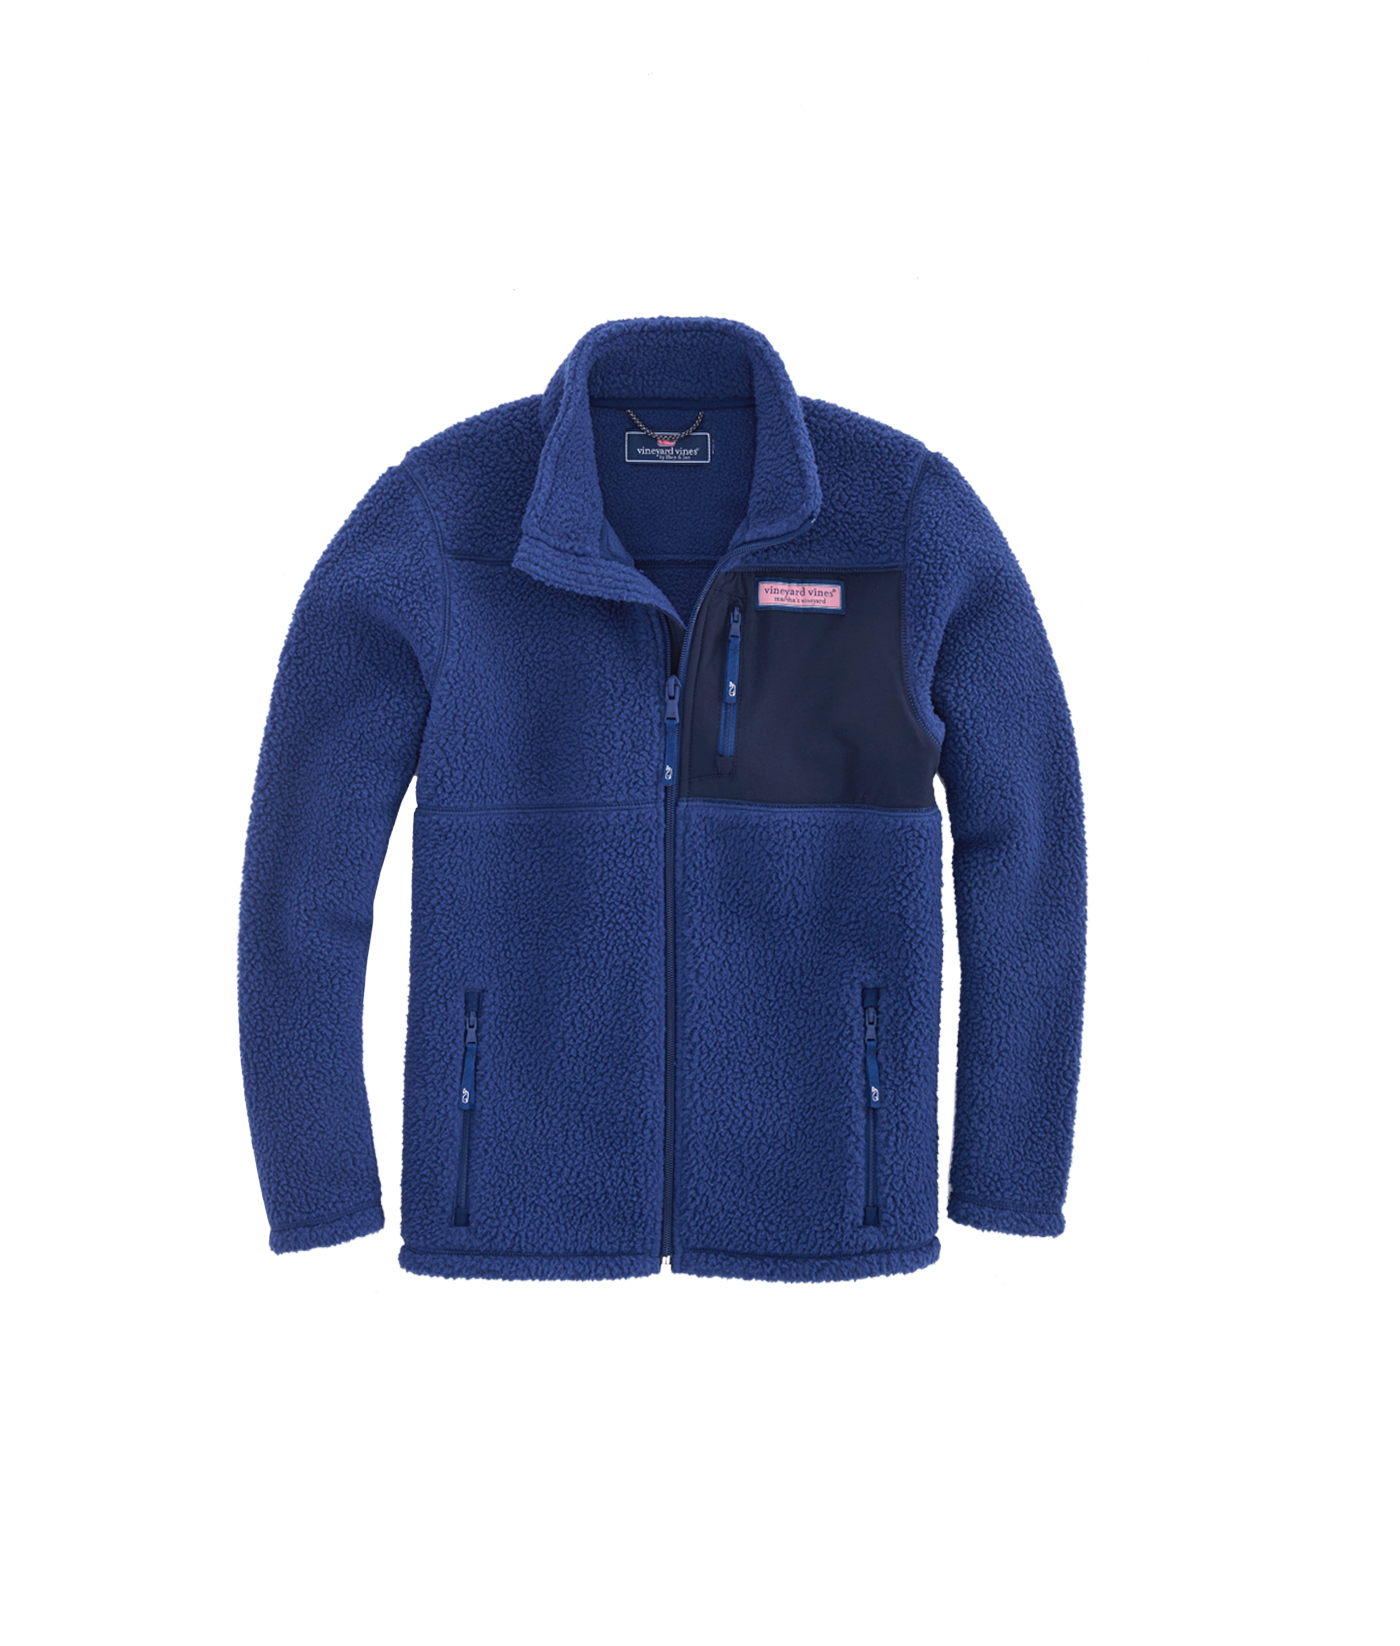 Boys Solid Sherpa Full-Zip Jacket